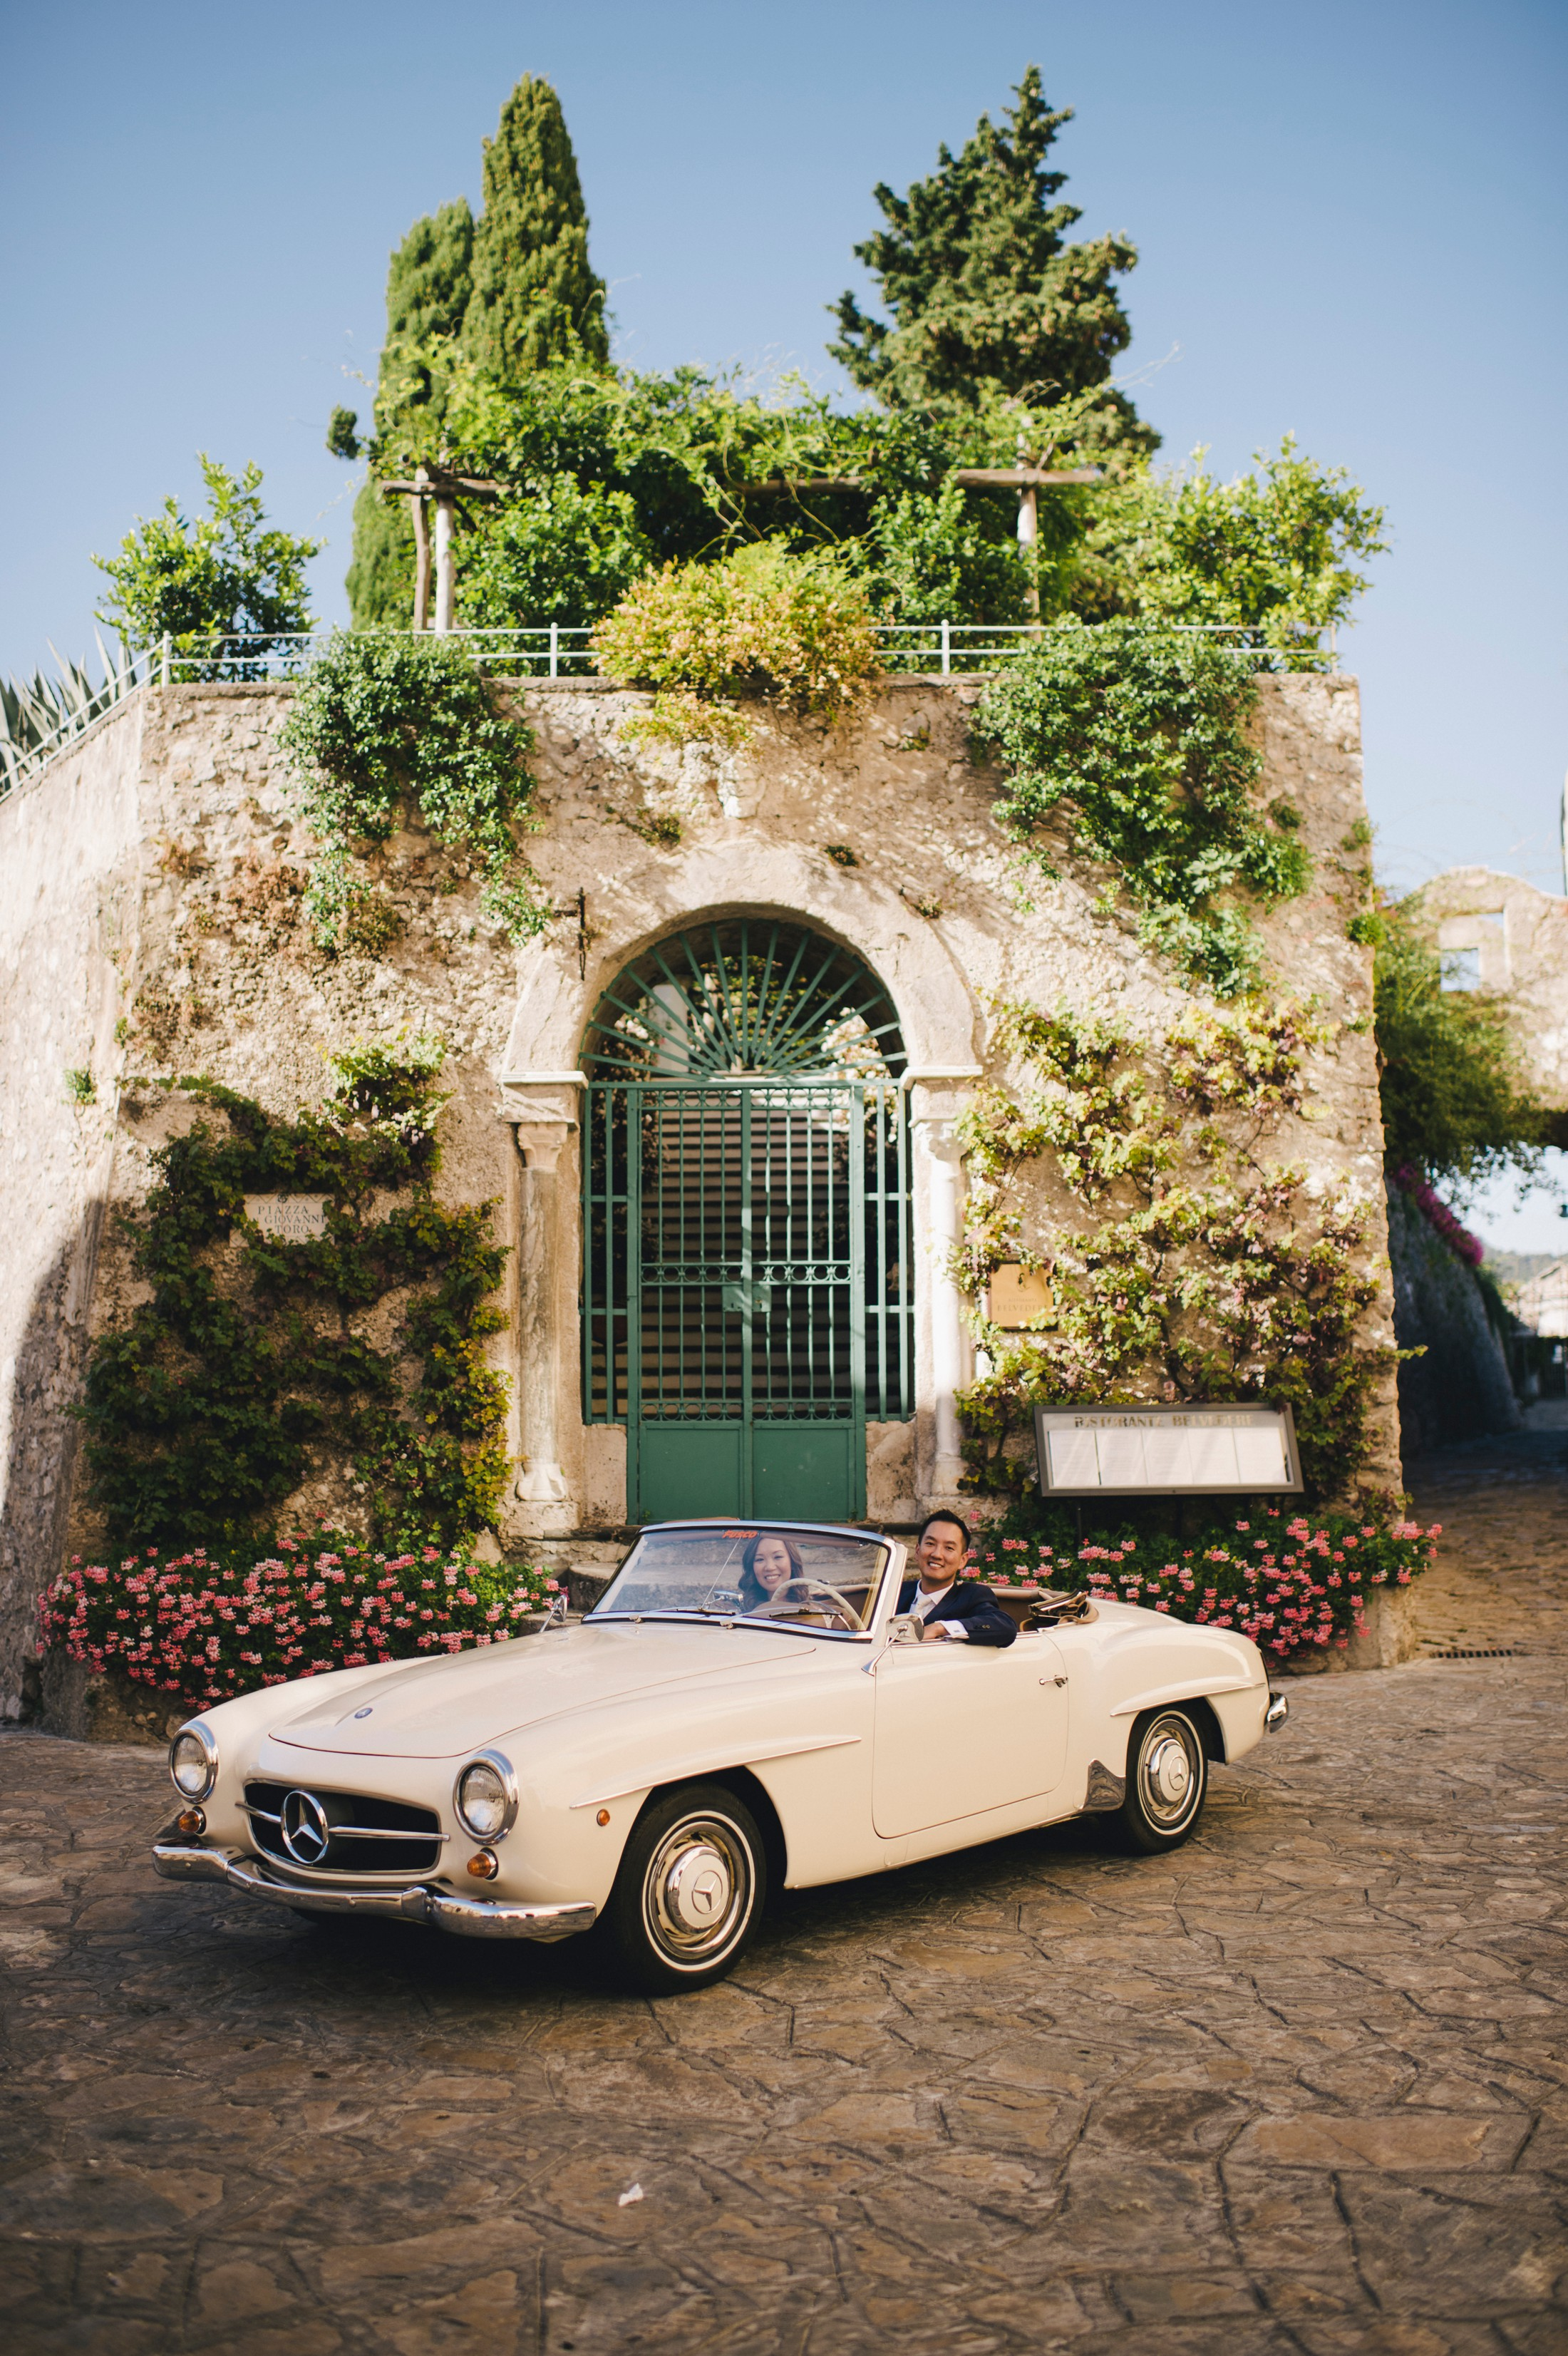 the bride and the groom in their wedding car